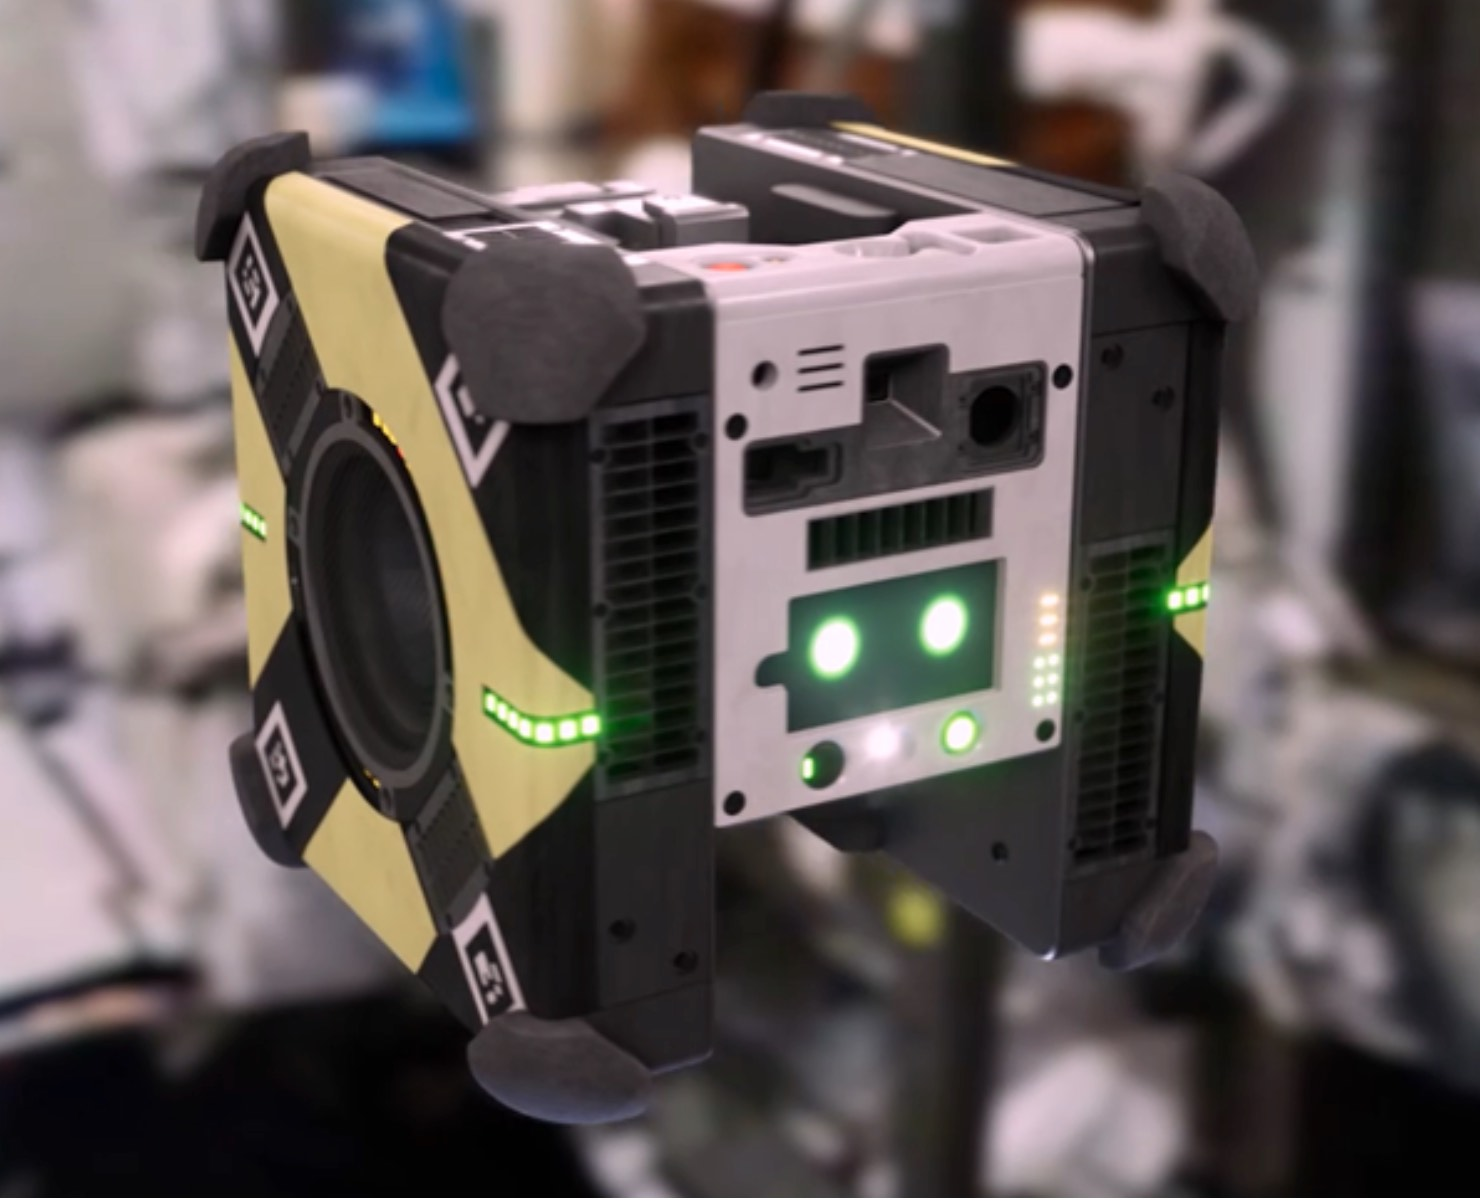 Cute, floating cube robots arrive at the International Space Station - Boing Boing